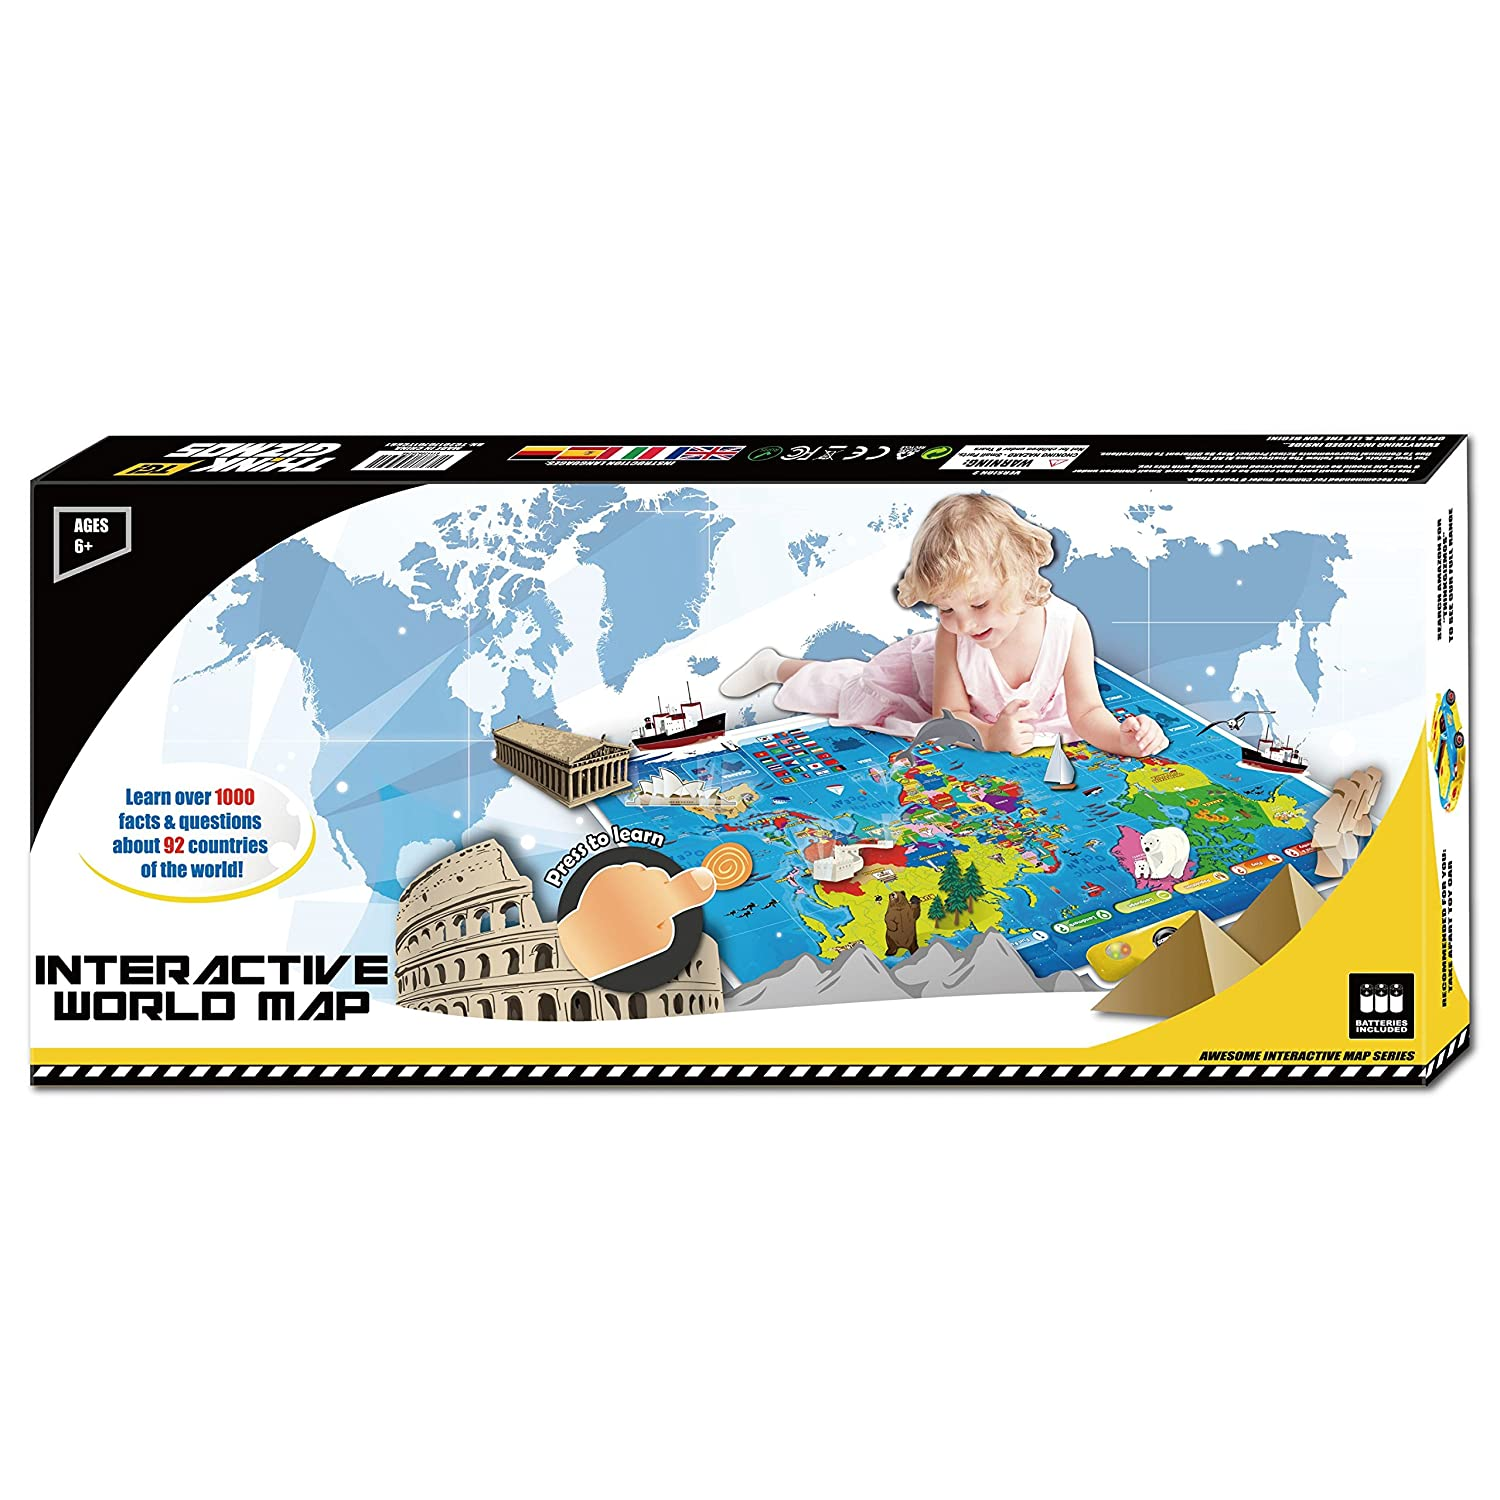 amazoncom interactive talking world map for kids tg661 push learn and discover over 1000 facts about our world ideal interactive learning toy gift